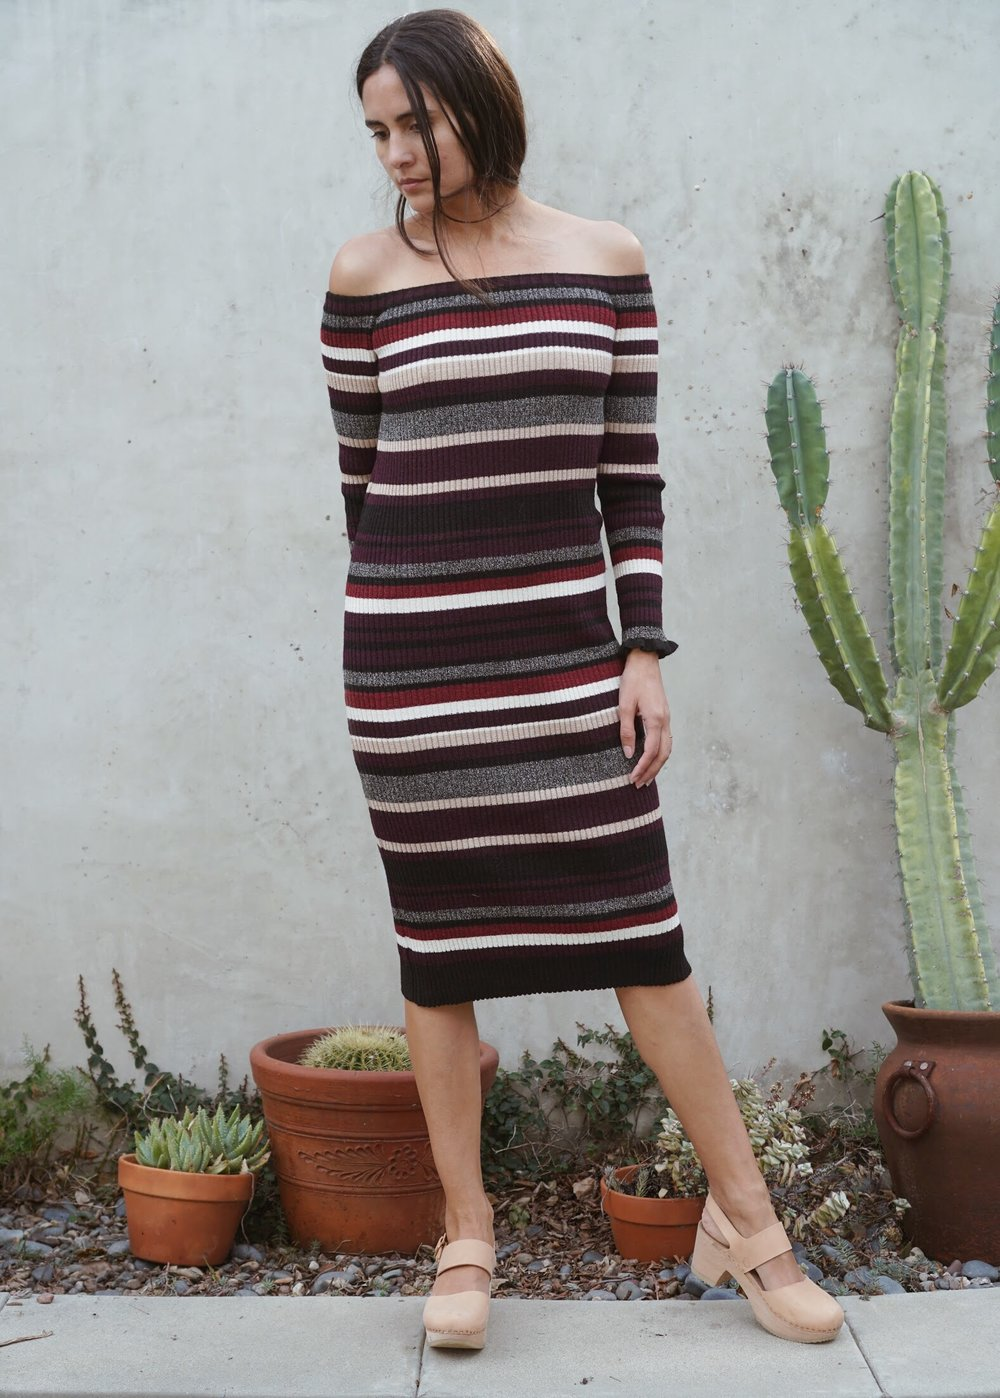 Eleven Six  Off Shoulder Sweater Dress in Multi +   Zuzii   Closed Toe Clogs in Natural.